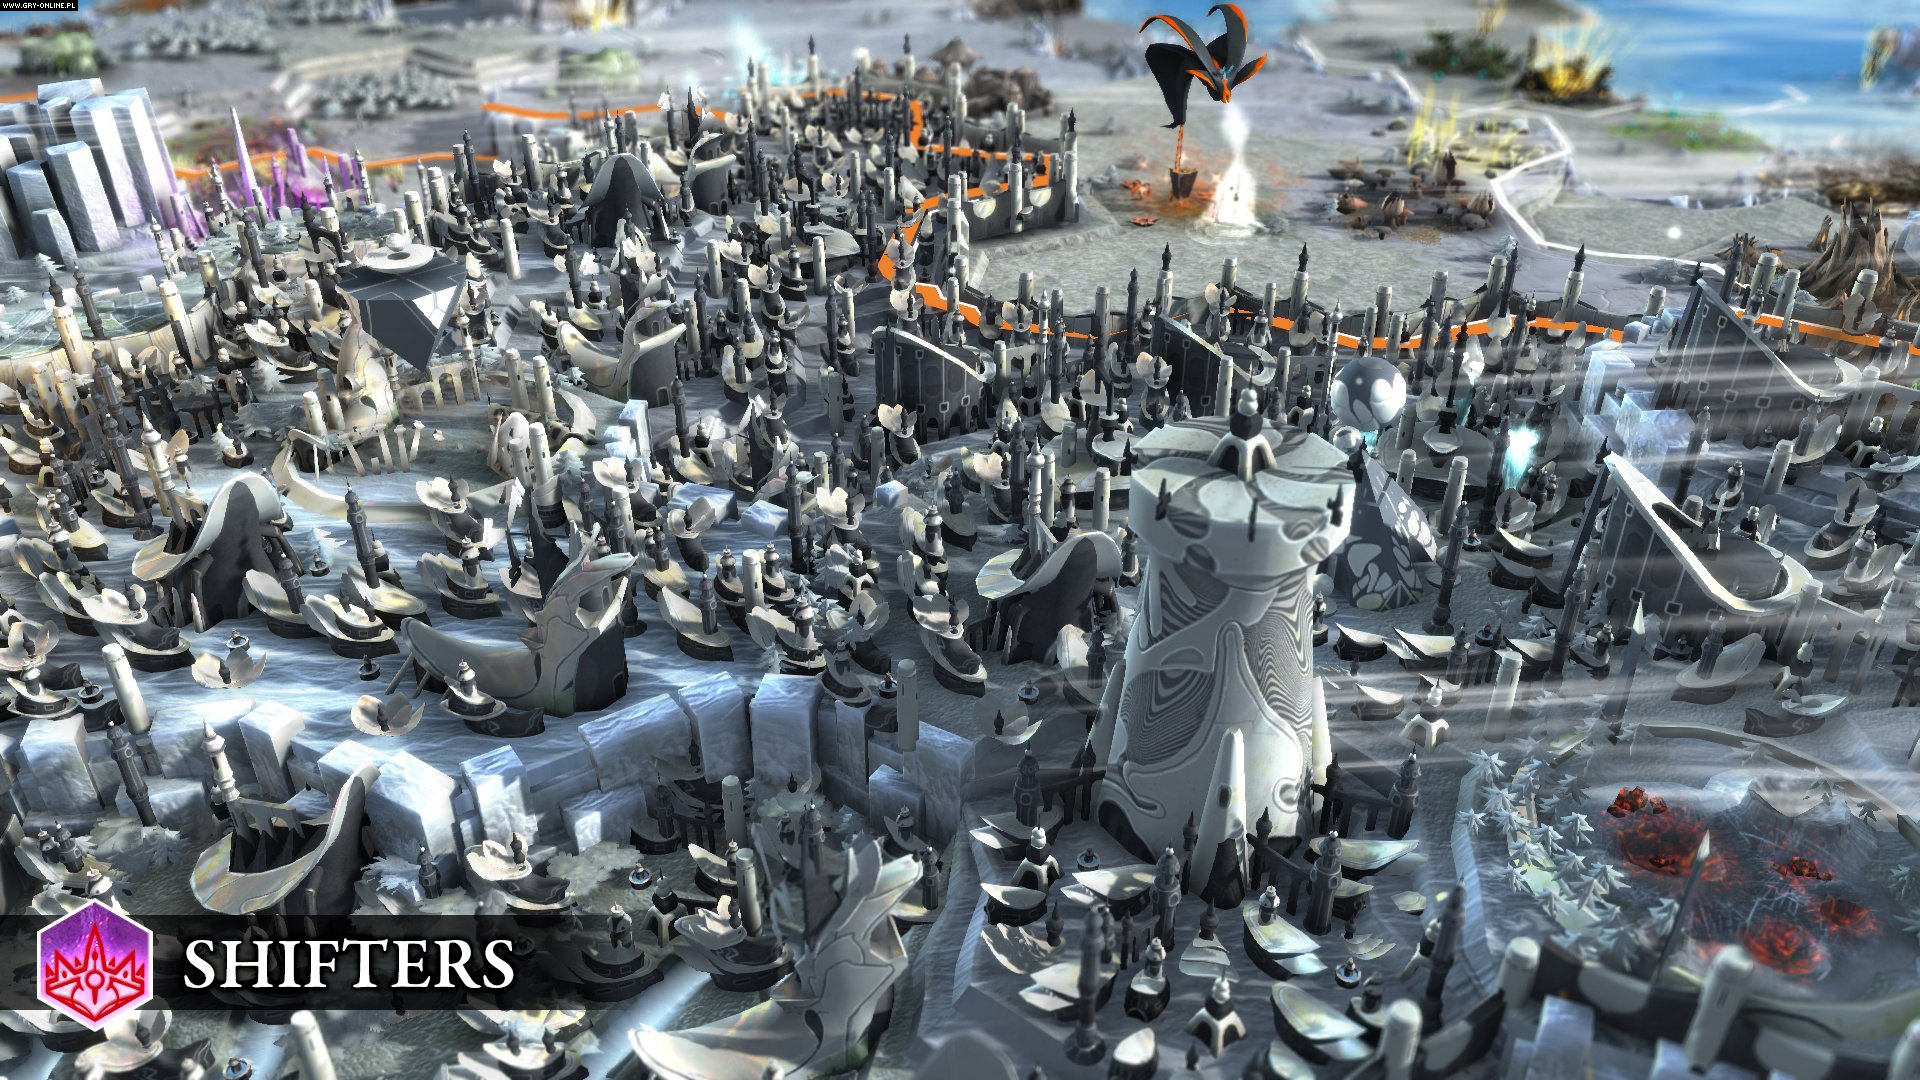 Endless Legend: Shifters PC Gry Screen 4/6, Amplitude Studios, Iceberg Interactive